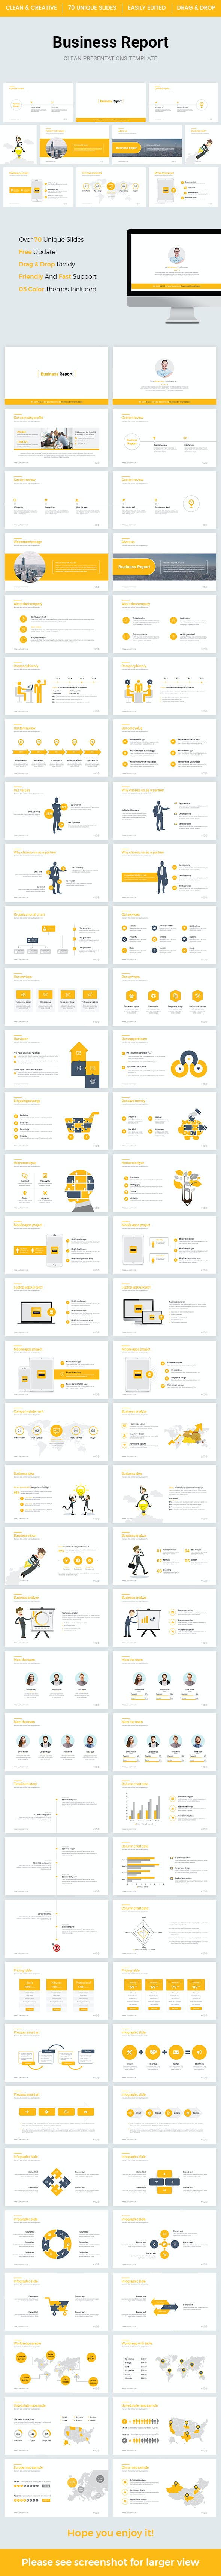 business report powerpoint template 2018 by light slides graphicriver